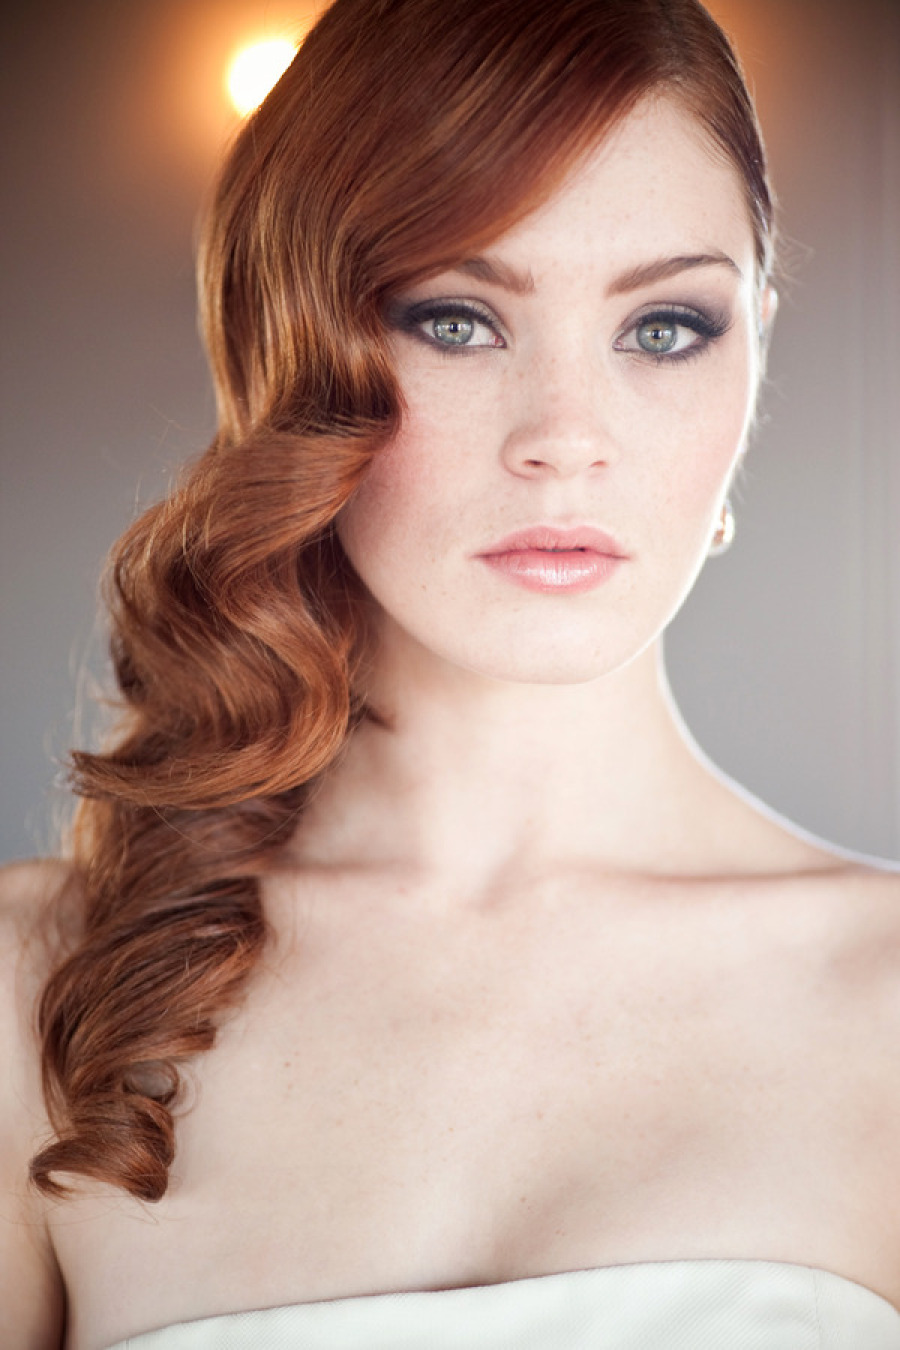 Wedding Makeup Guide For Spring 2013 Pale Skin | OneWed.com